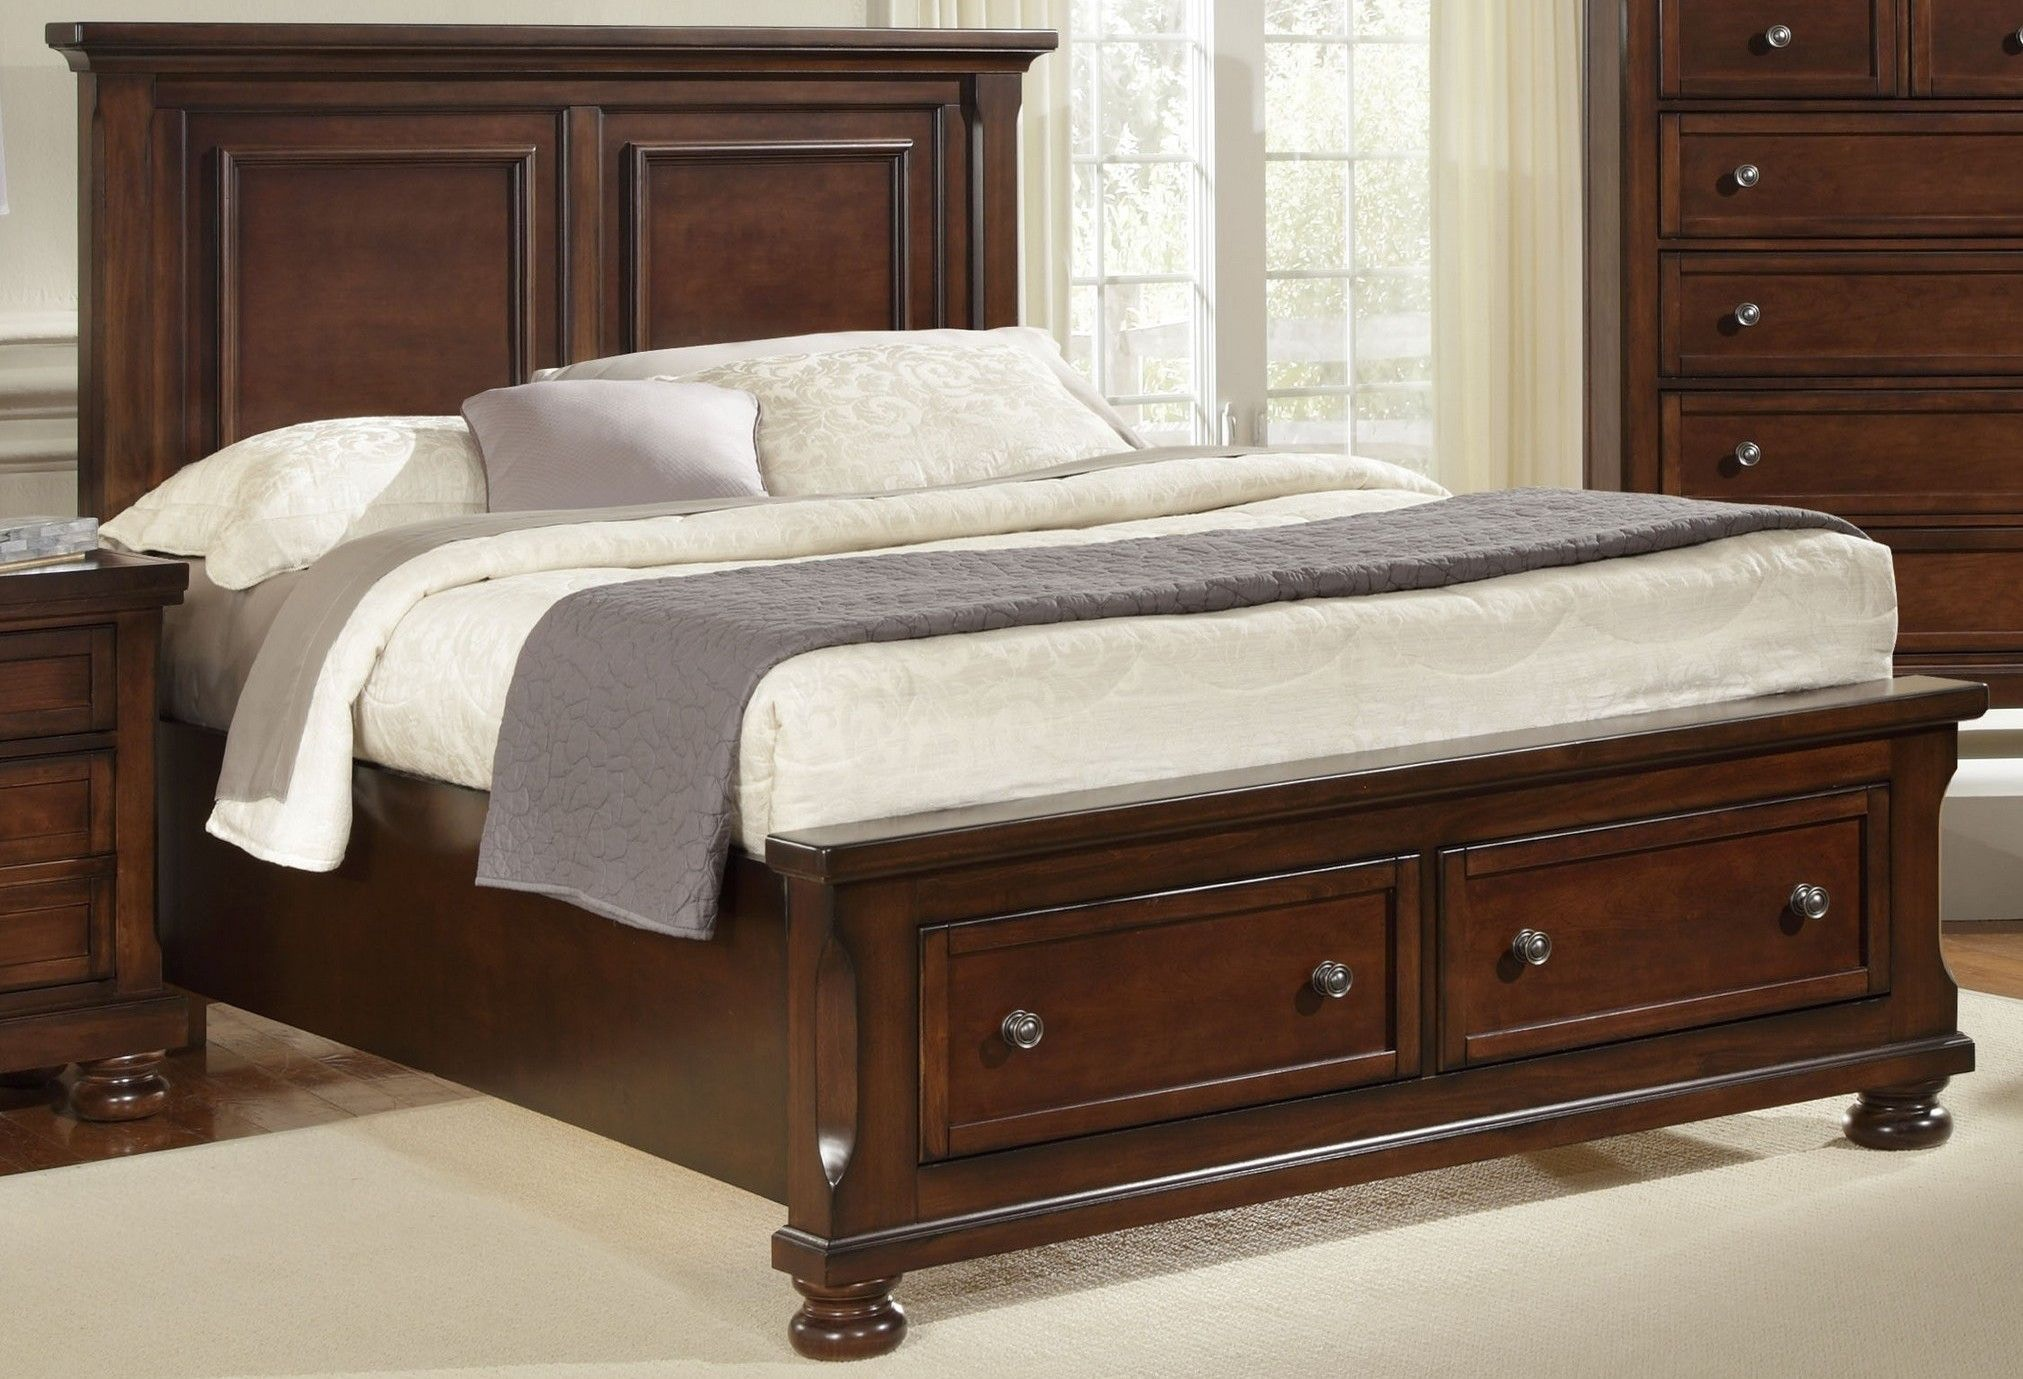 VaughanBassett Bedroom Storage Fb 50 530050B Lynchs Furniture